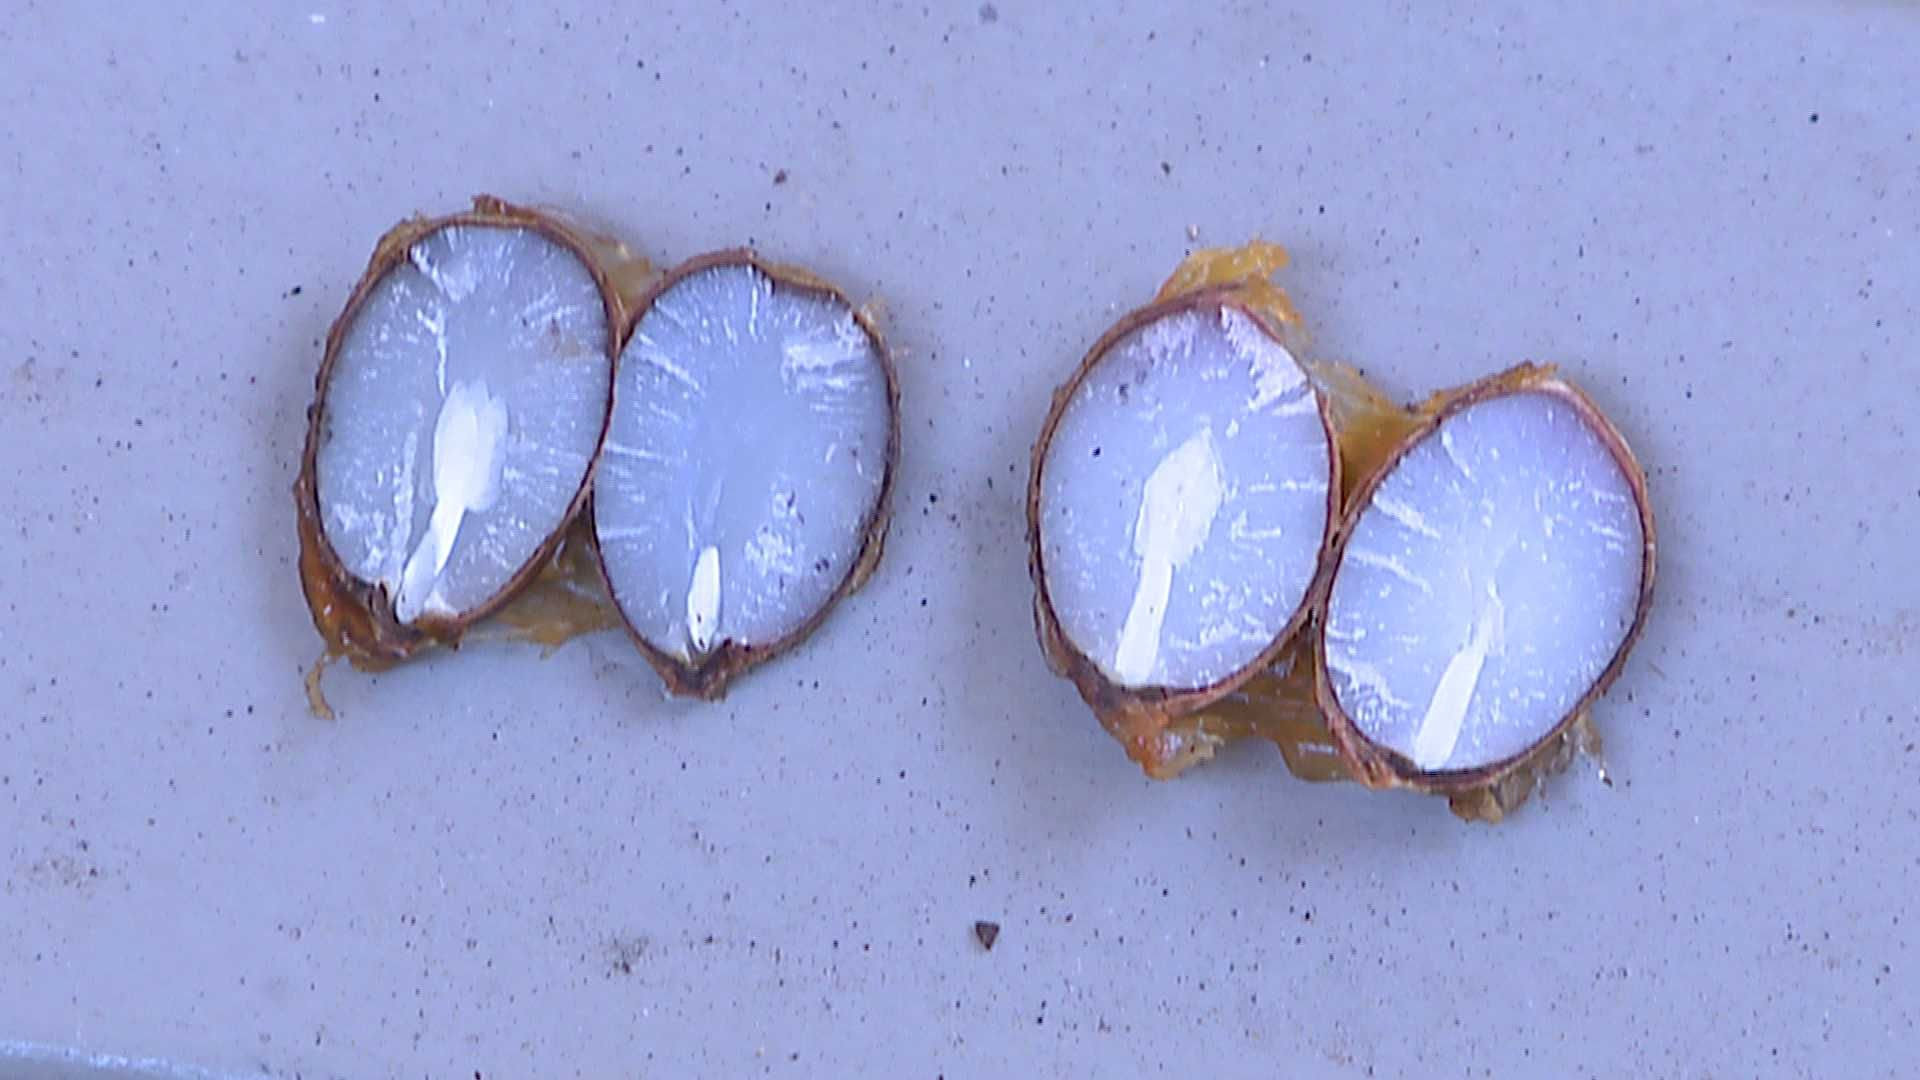 How accurate are persimmon seeds in predicting winter